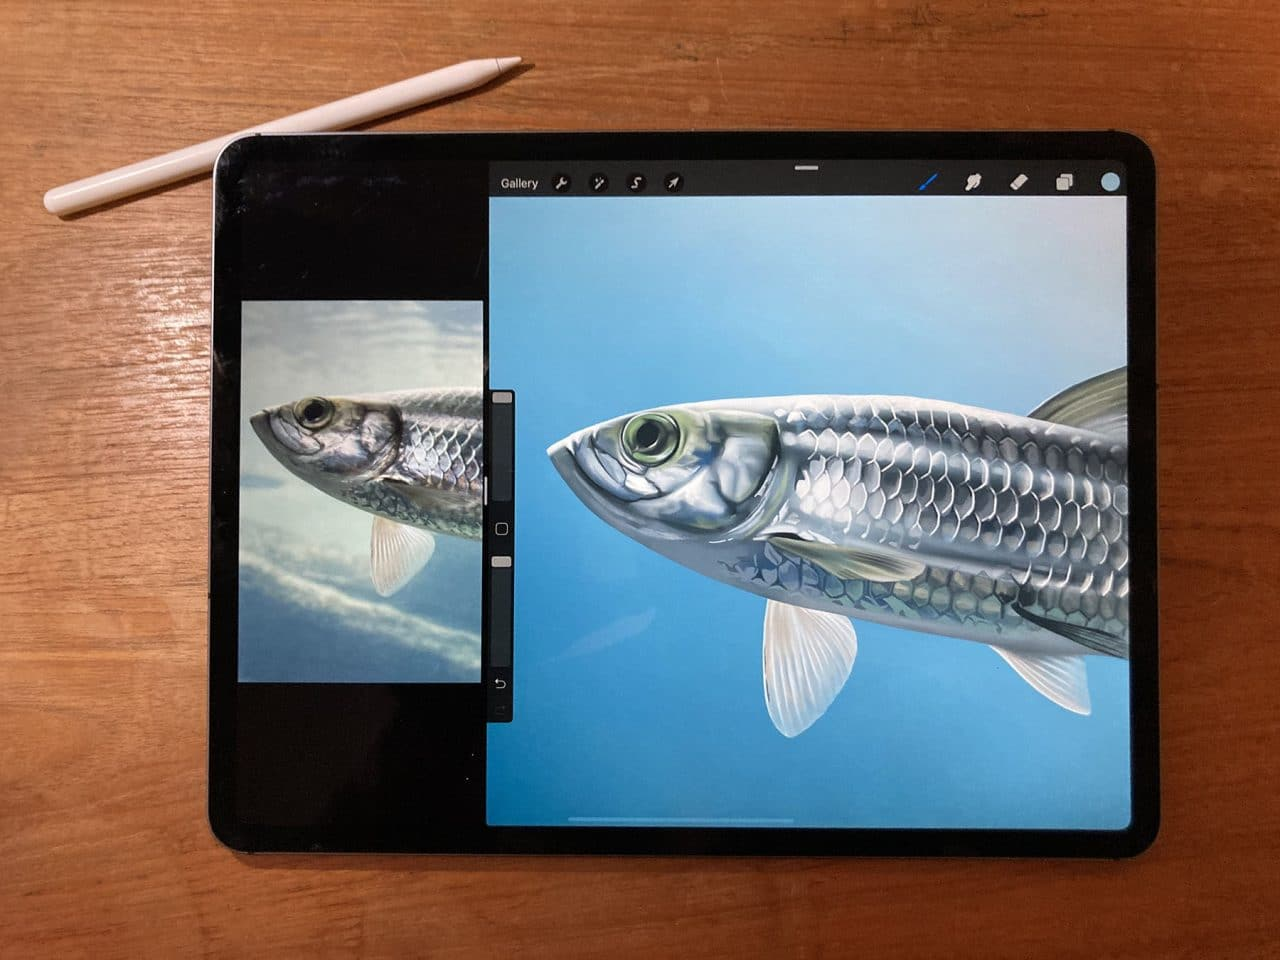 Learning how to draw a fish from a reference photo is easy with Procreate on iPad Pro